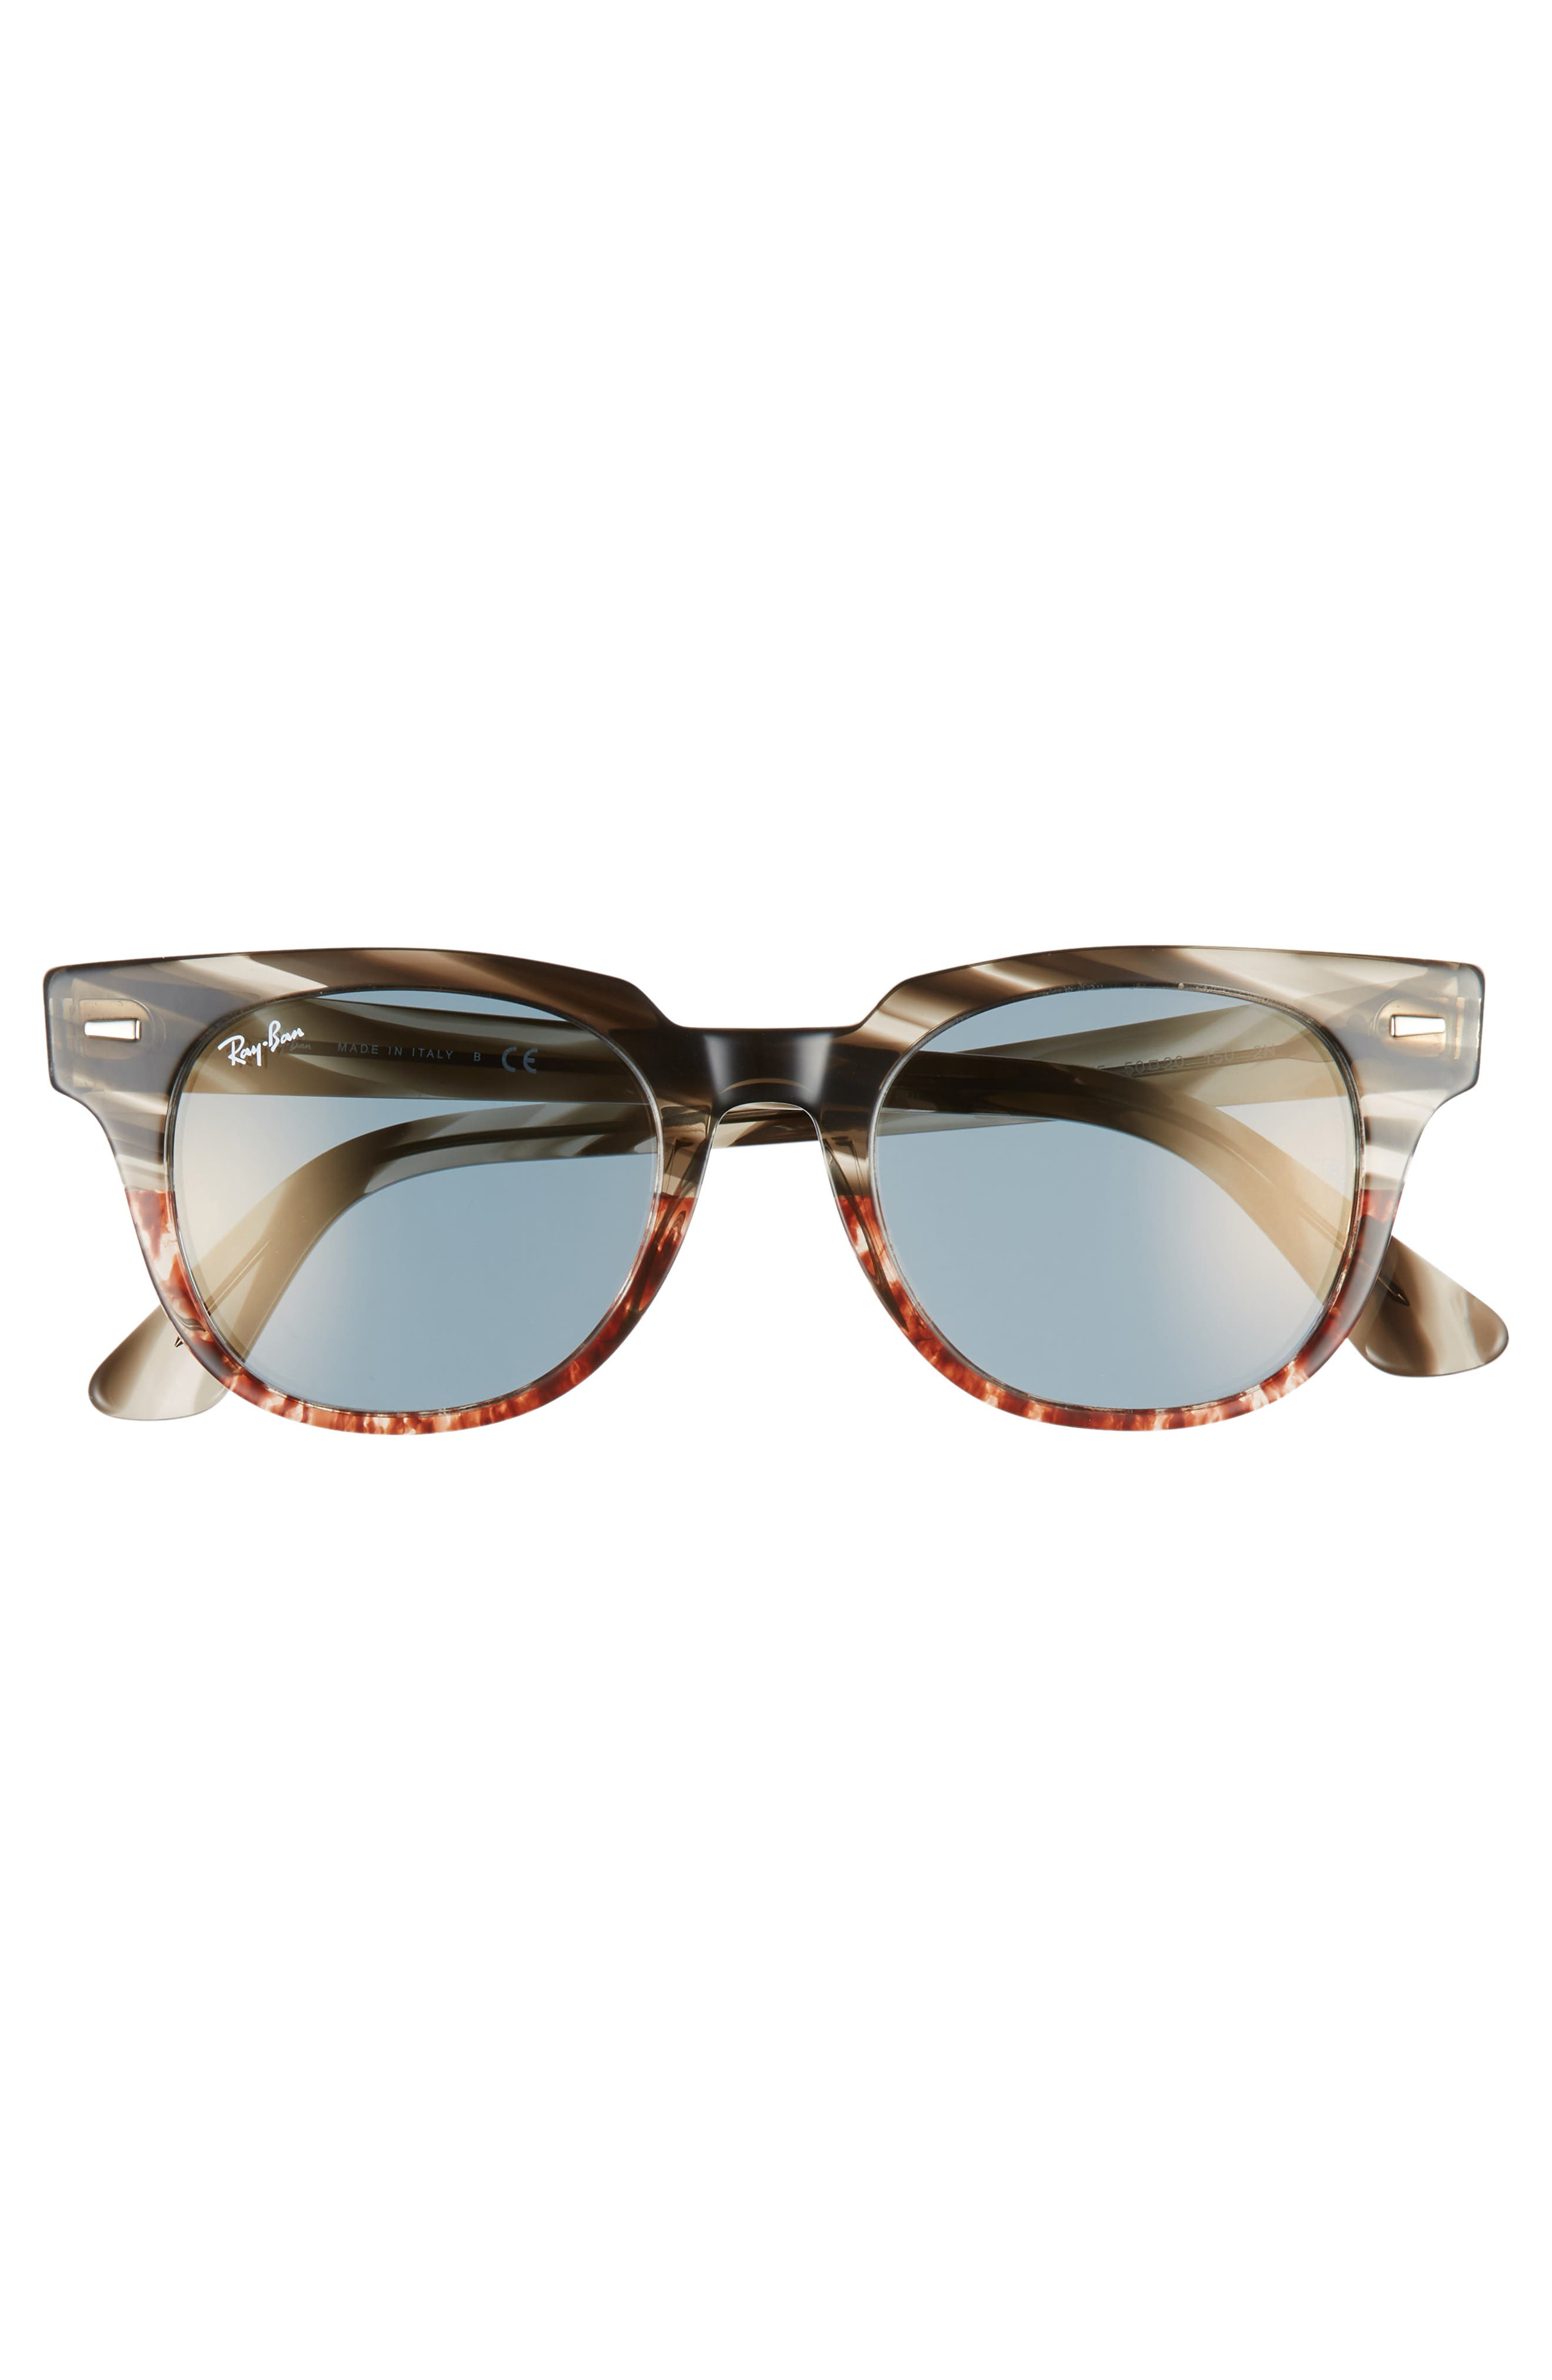 Meteor 50mm Mirrored Wayfarer Sunglasses,                             Alternate thumbnail 3, color,                             GOLD BLUE MIRROR